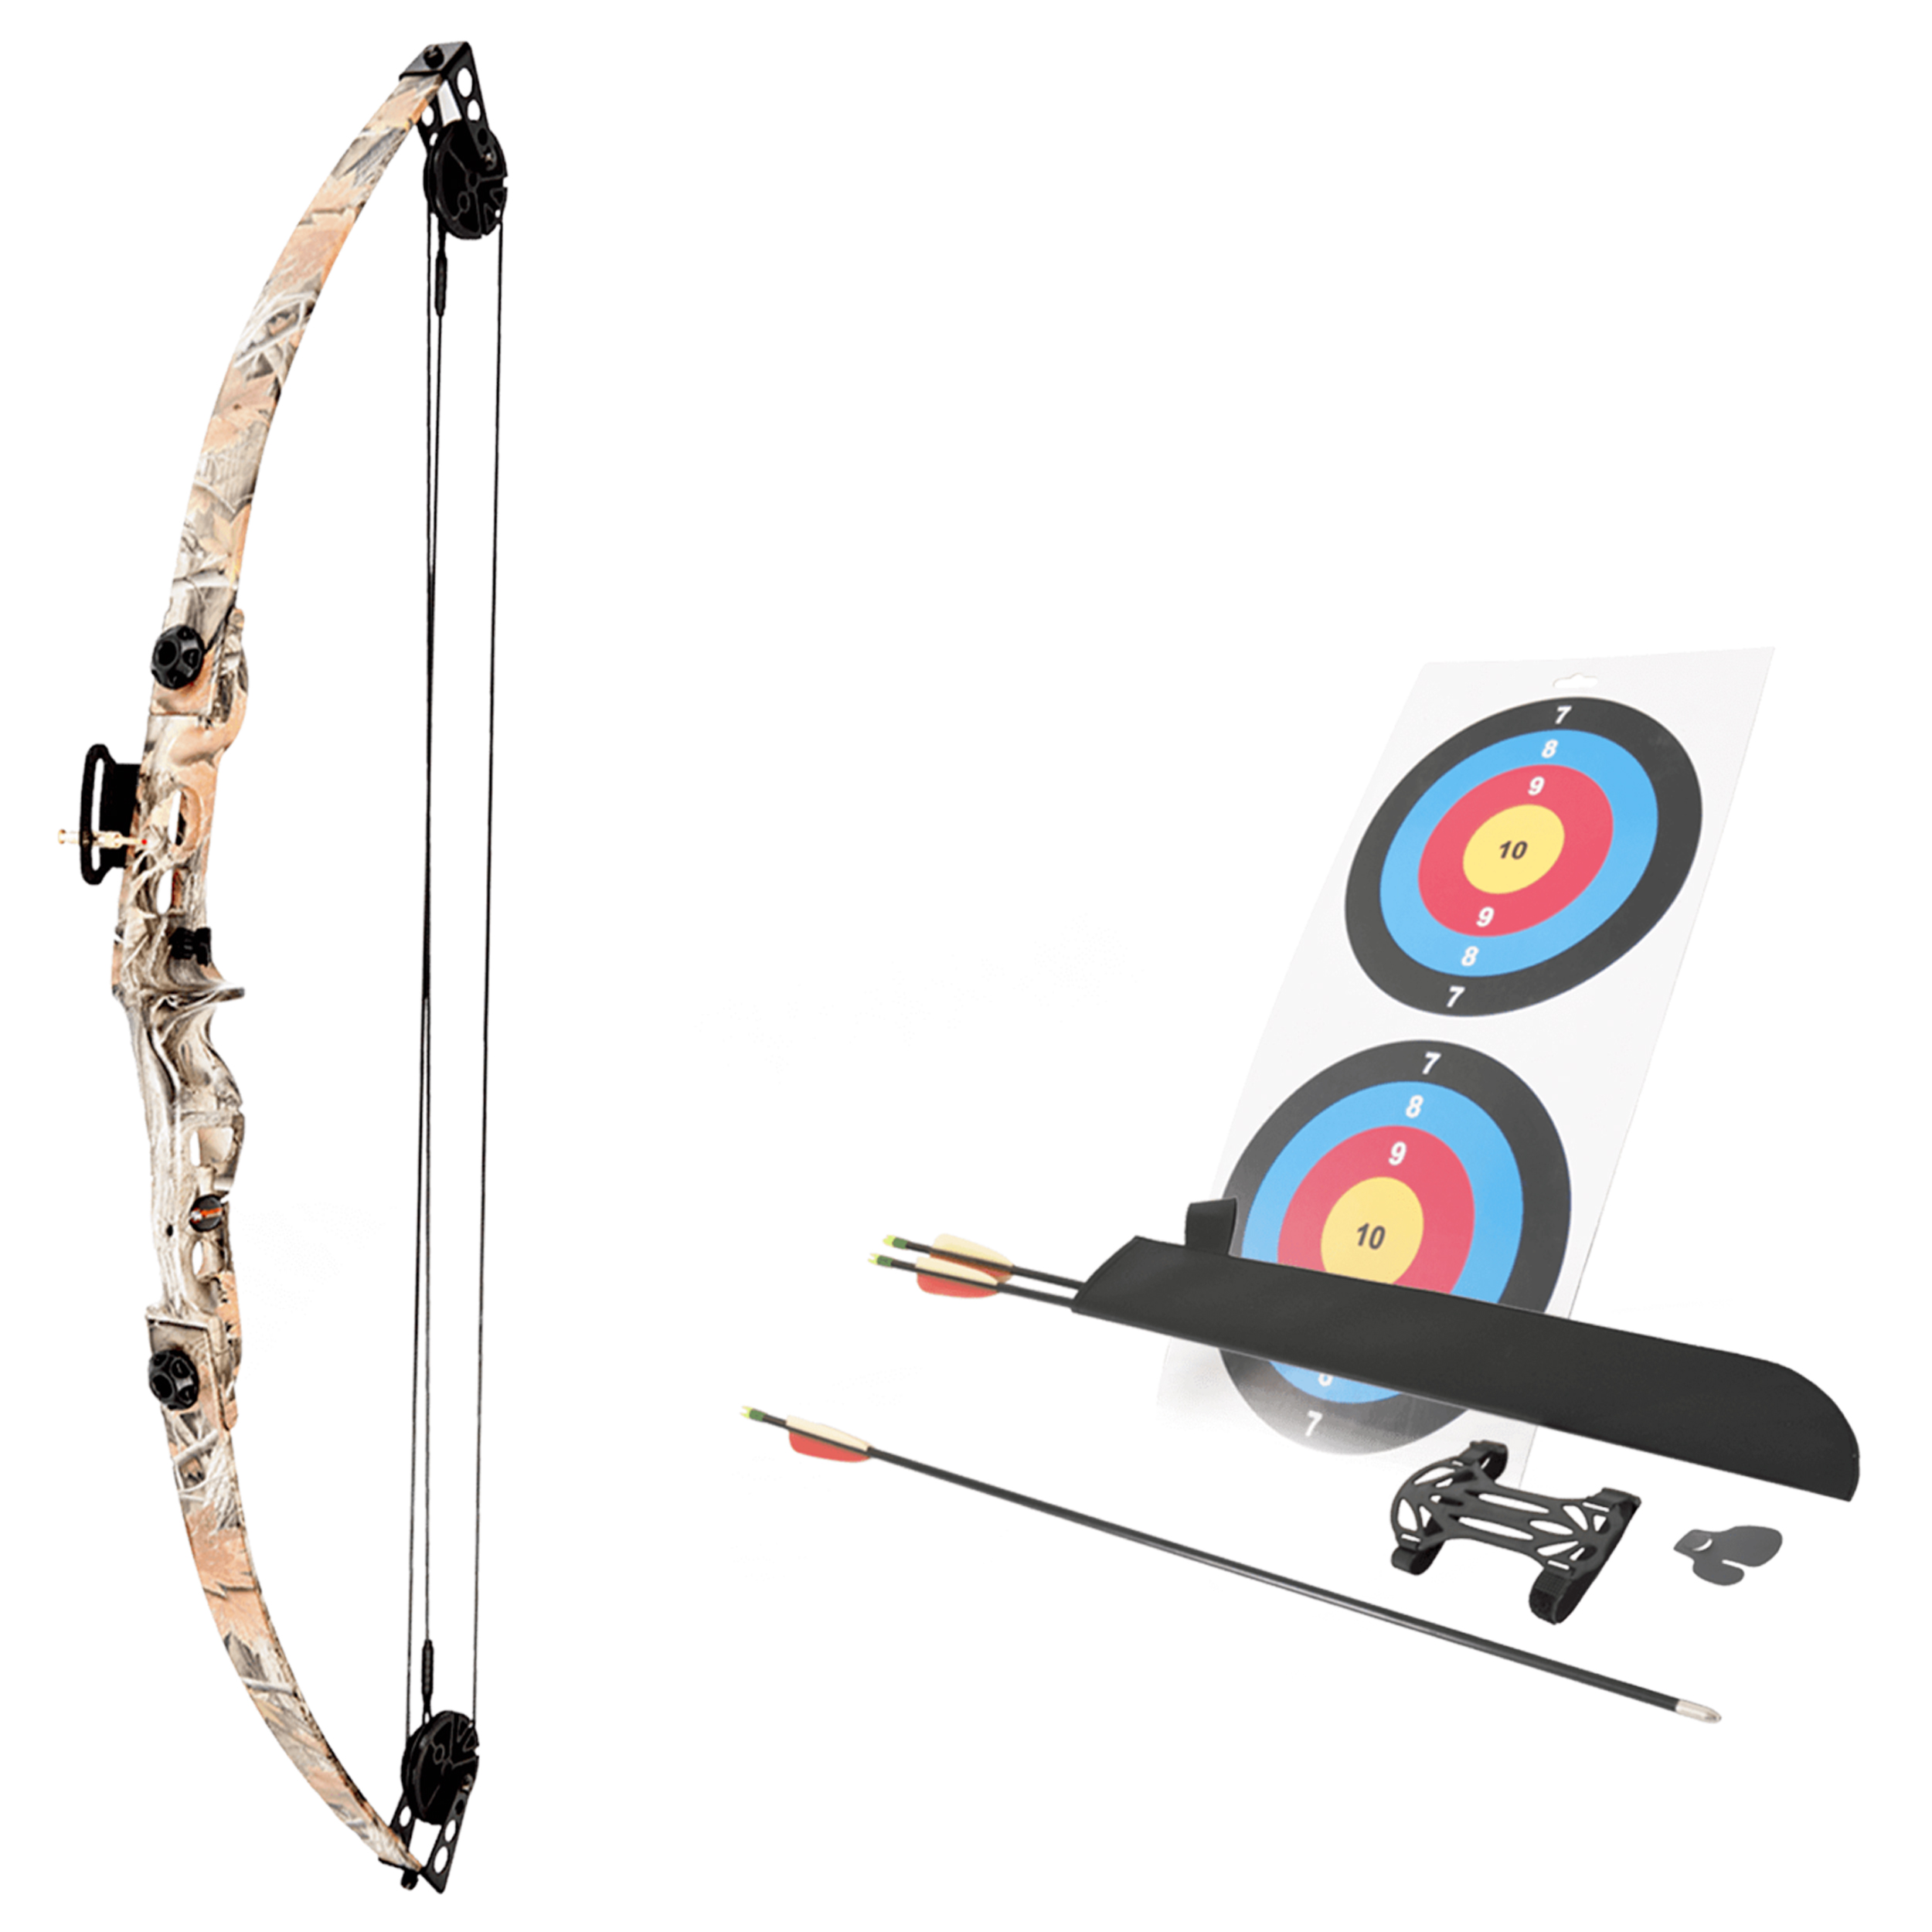 SA Sports Elk Youth Compound Bow Set 564. Right Handed, Camo